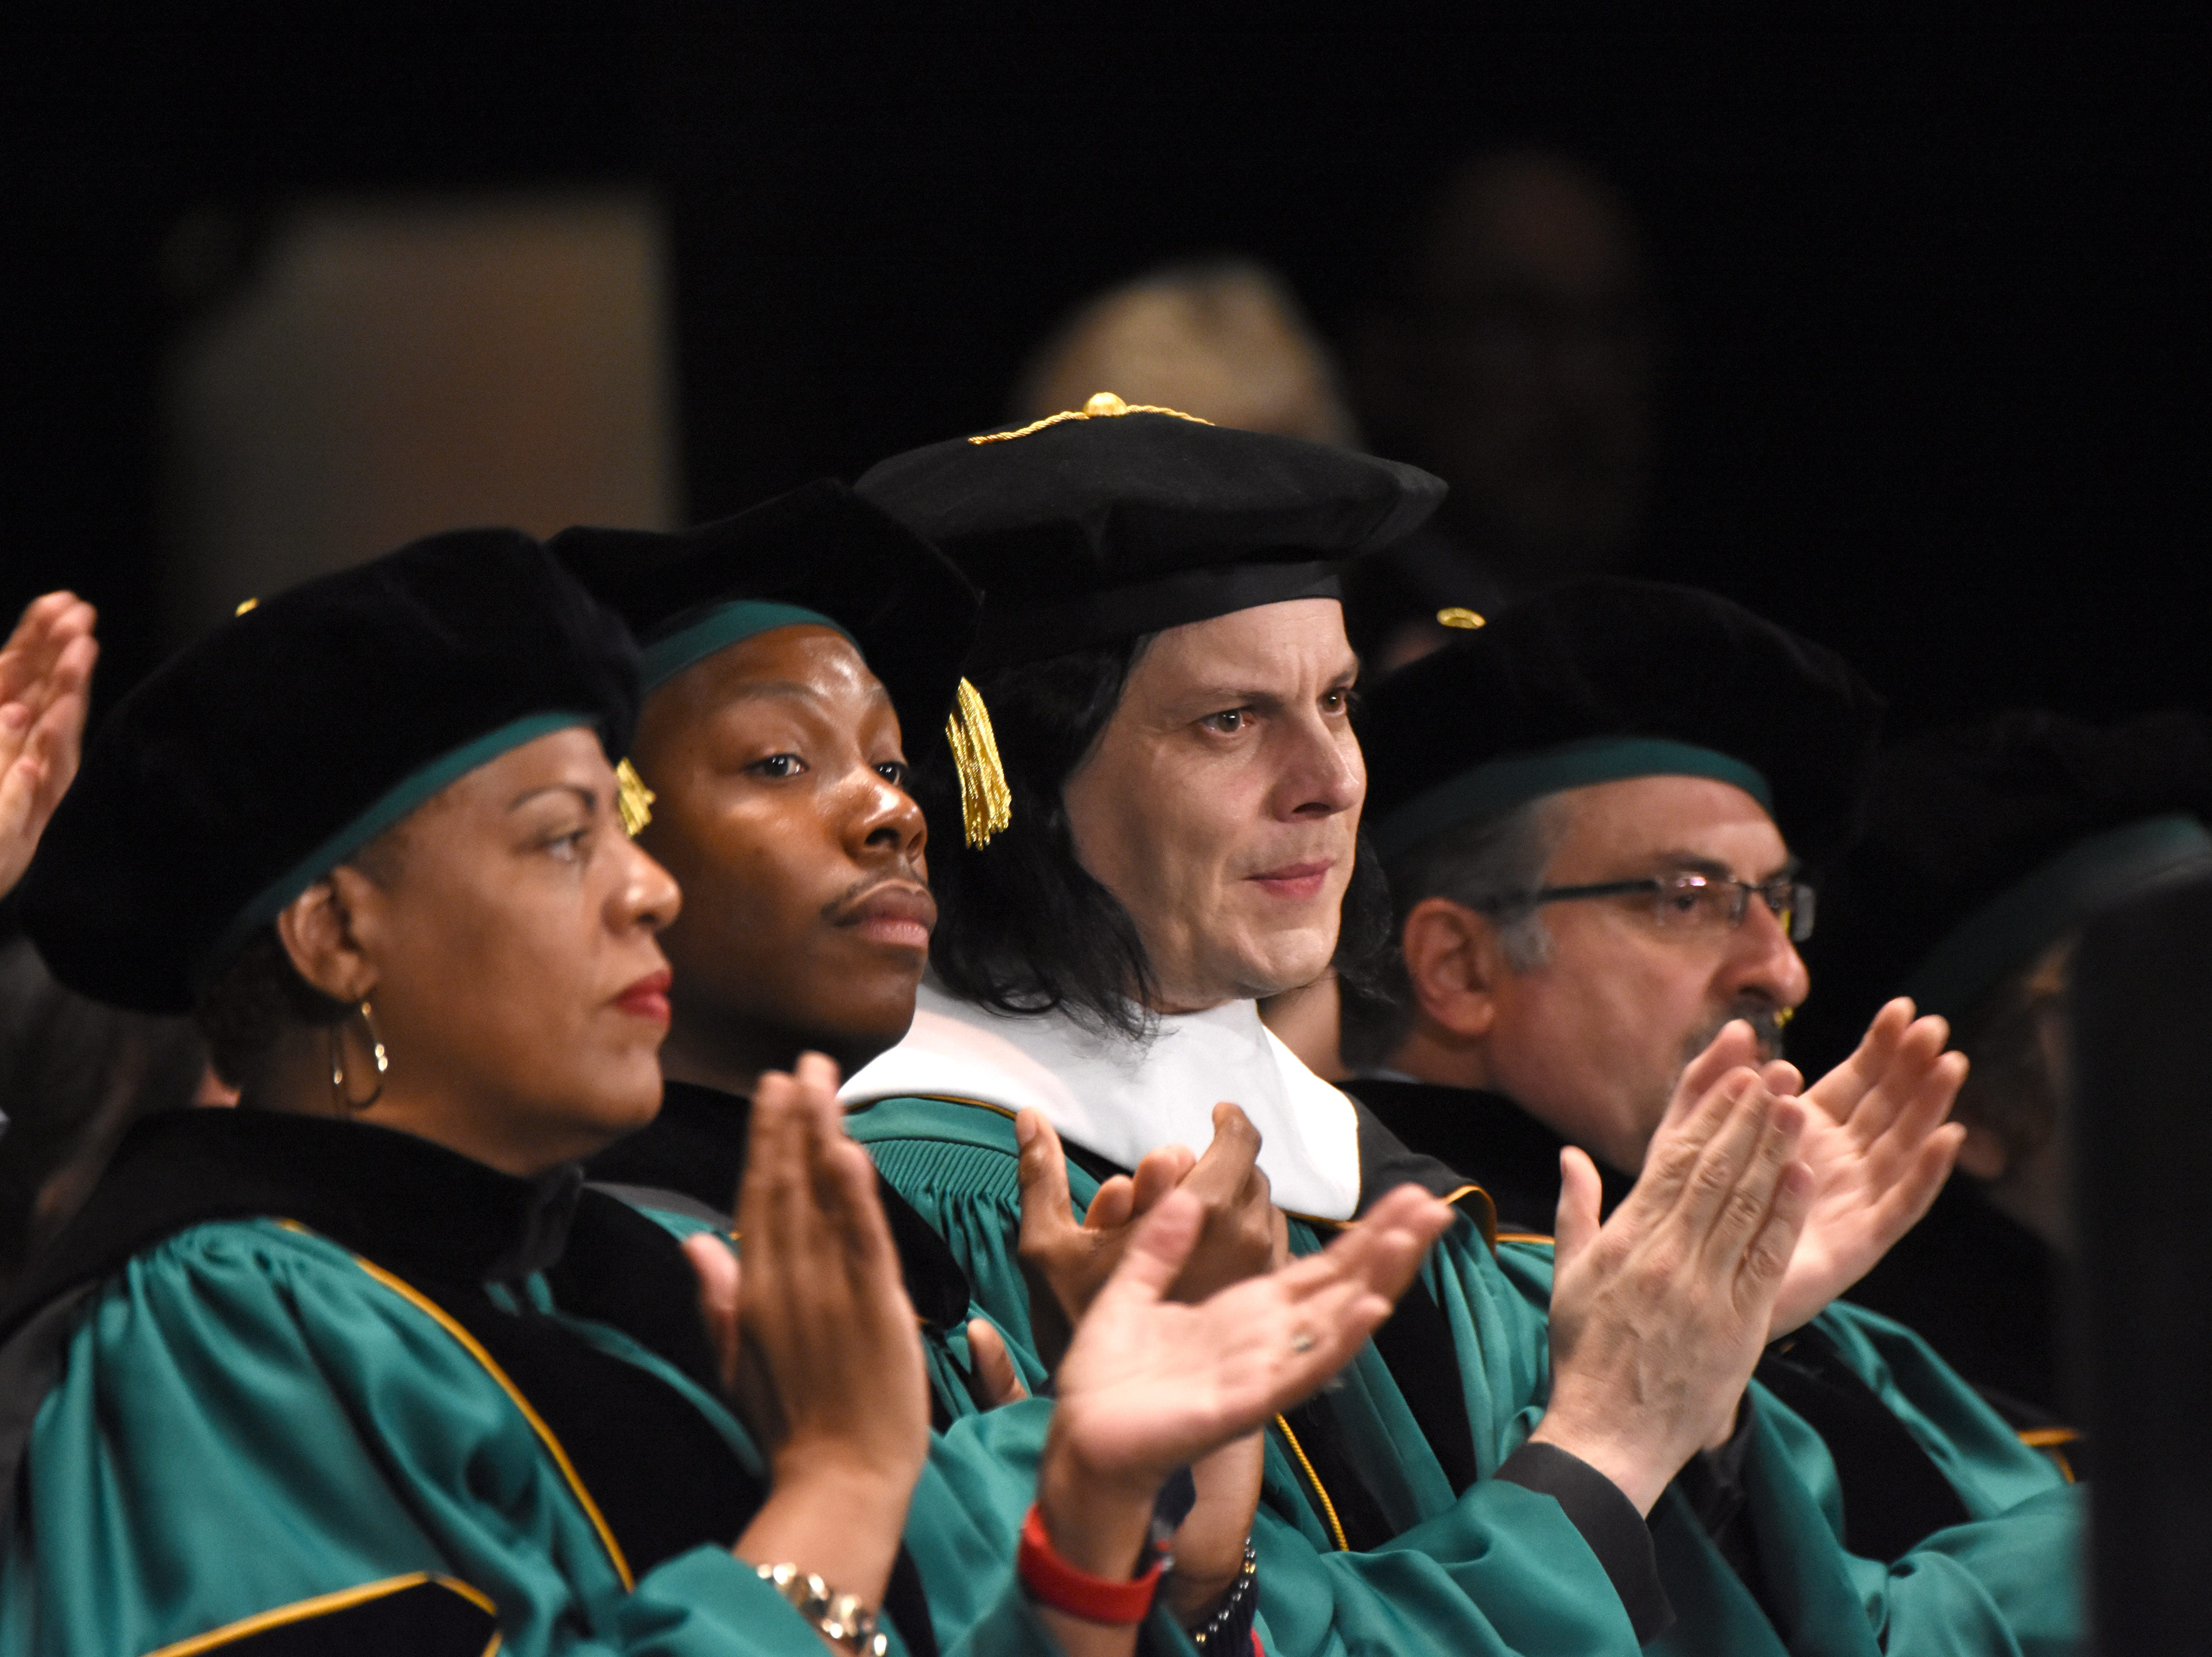 Musician Jack White claps moments after receiving an honorary degree during the Wayne State University commencement exercises at the Fox Theatre on Friday, May 3, 2019.